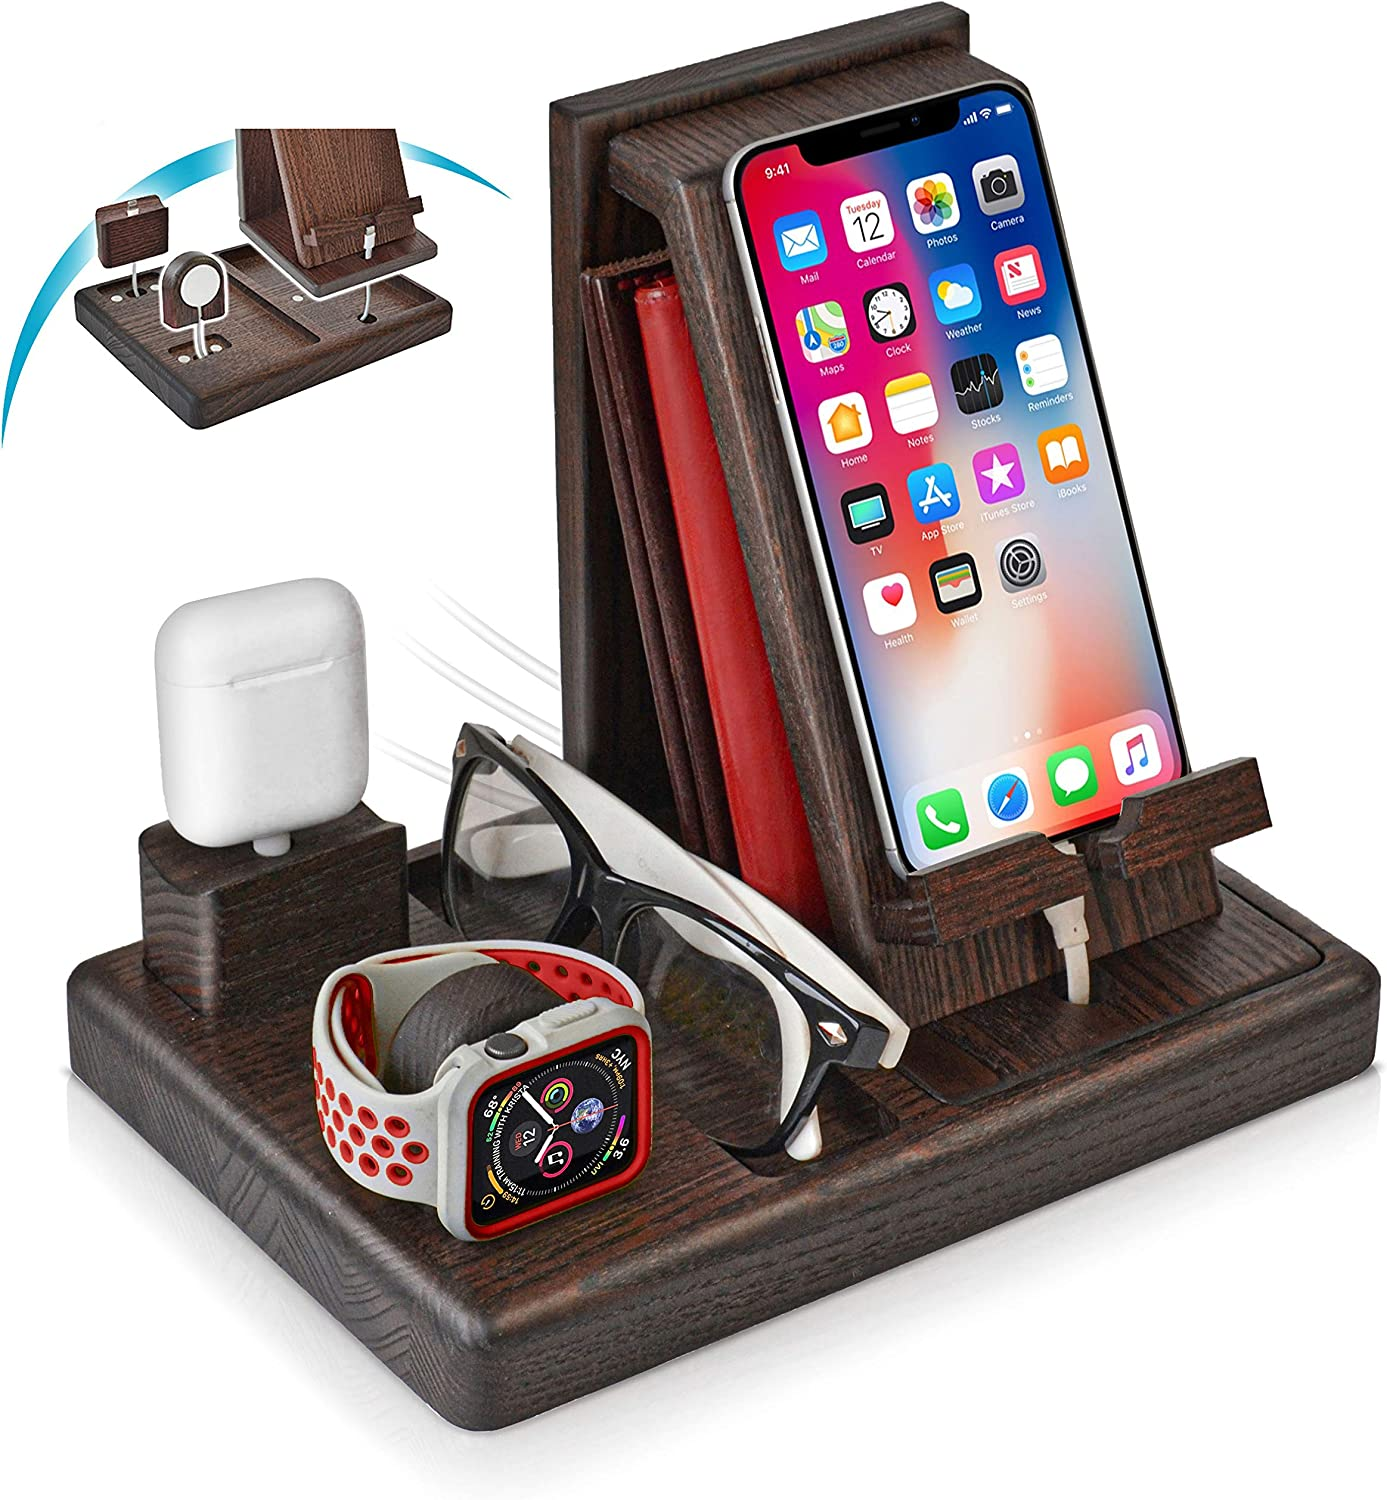 TESLYAR Wood Phone Docking Station Ash-Wood Key Holder Wallet Stand Watch Organizer Men Gift Husband Wife Anniversary Birthday Nightstand Graduation Male Gadgets Compatible with iPhone iWatch AirPods